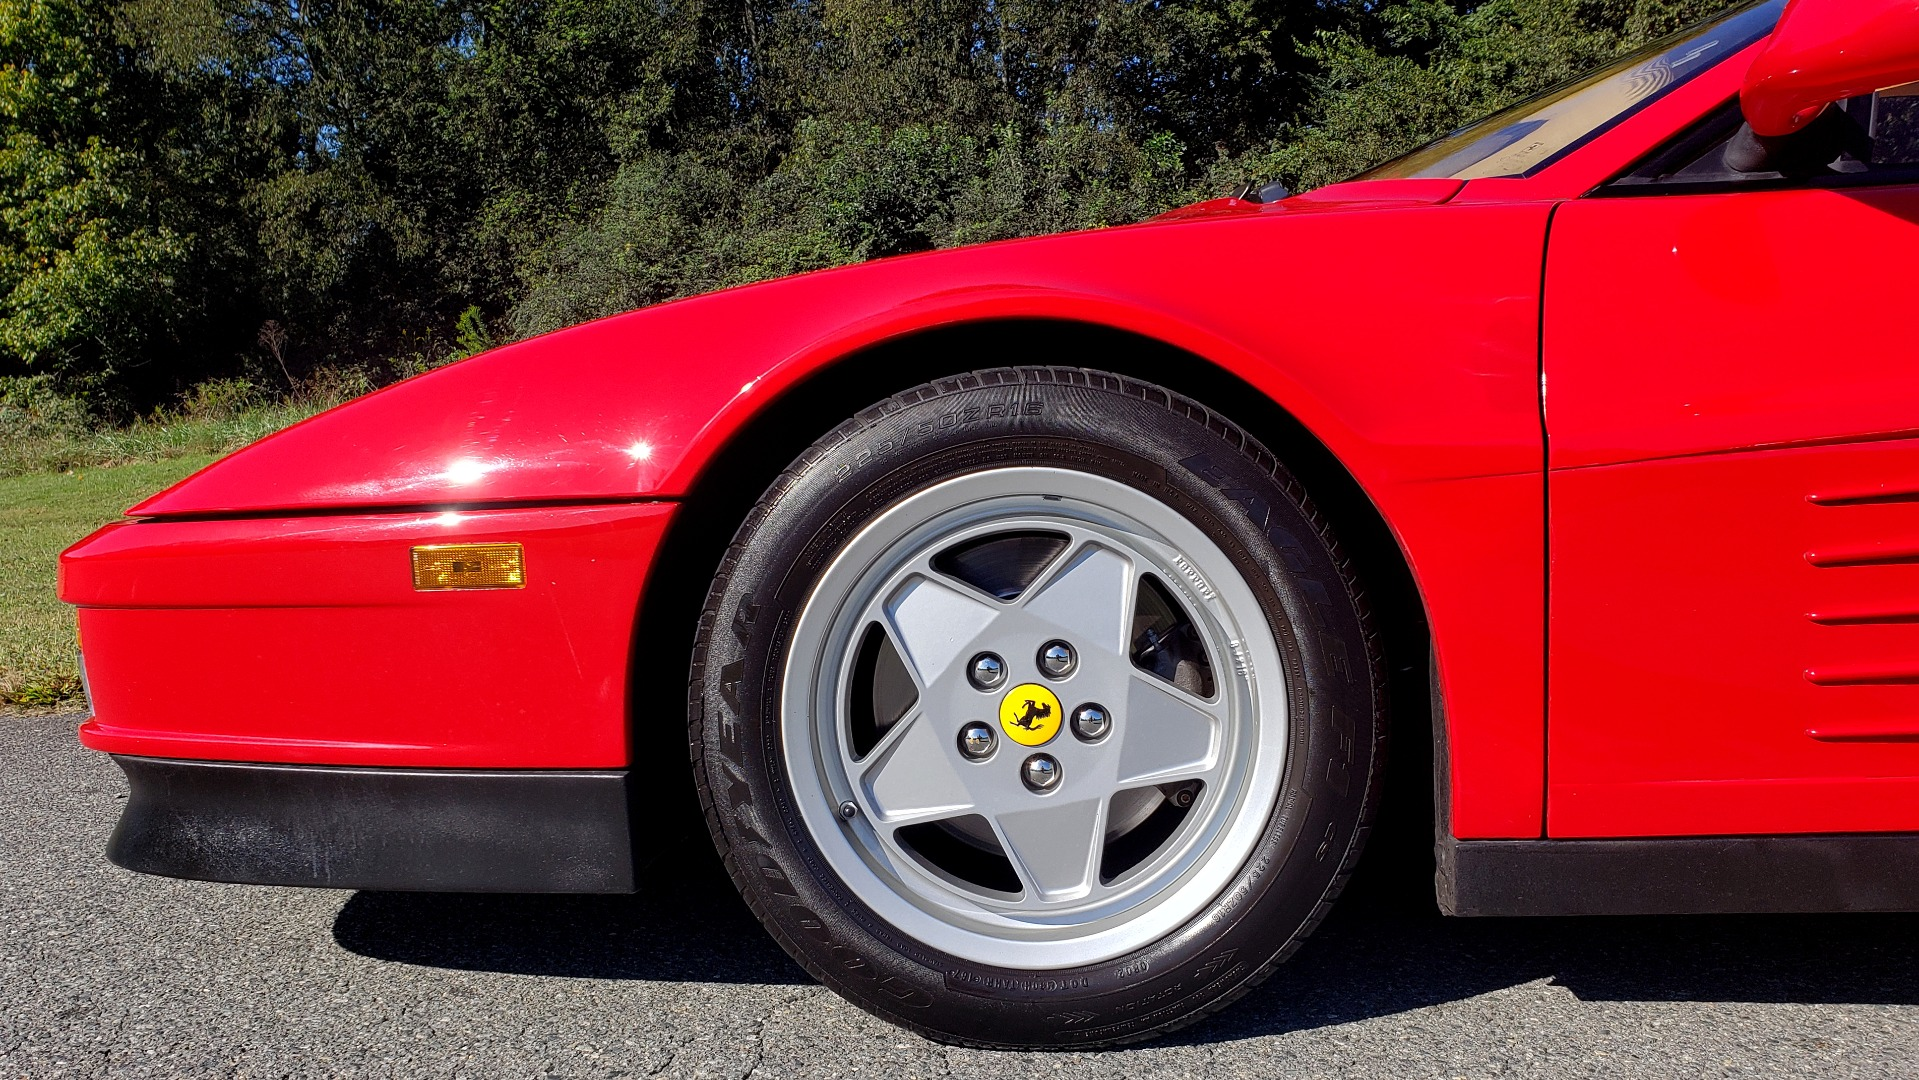 Used 1988 Ferrari TESTAROSSA COUPE / 4.9L FLAT-12 / 5-SPEED MANUAL / LOW MILES SUPER CLEAN for sale $128,999 at Formula Imports in Charlotte NC 28227 58